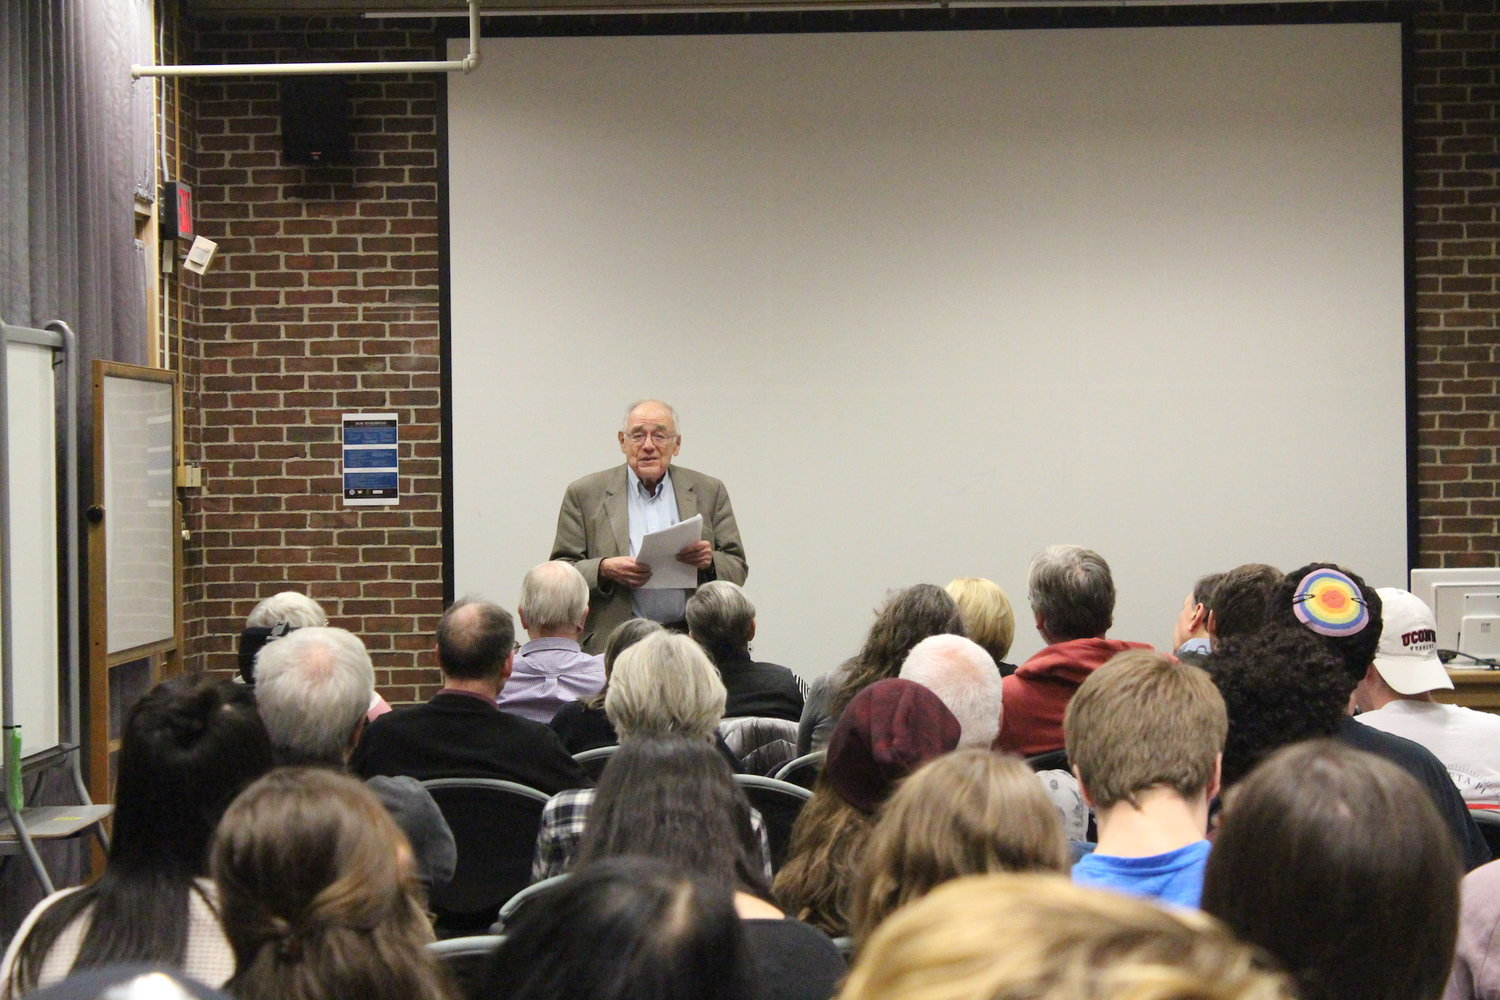 11-8-17 Denial screening Hans Laufer photo credit Ryan Murace The Daily Campus